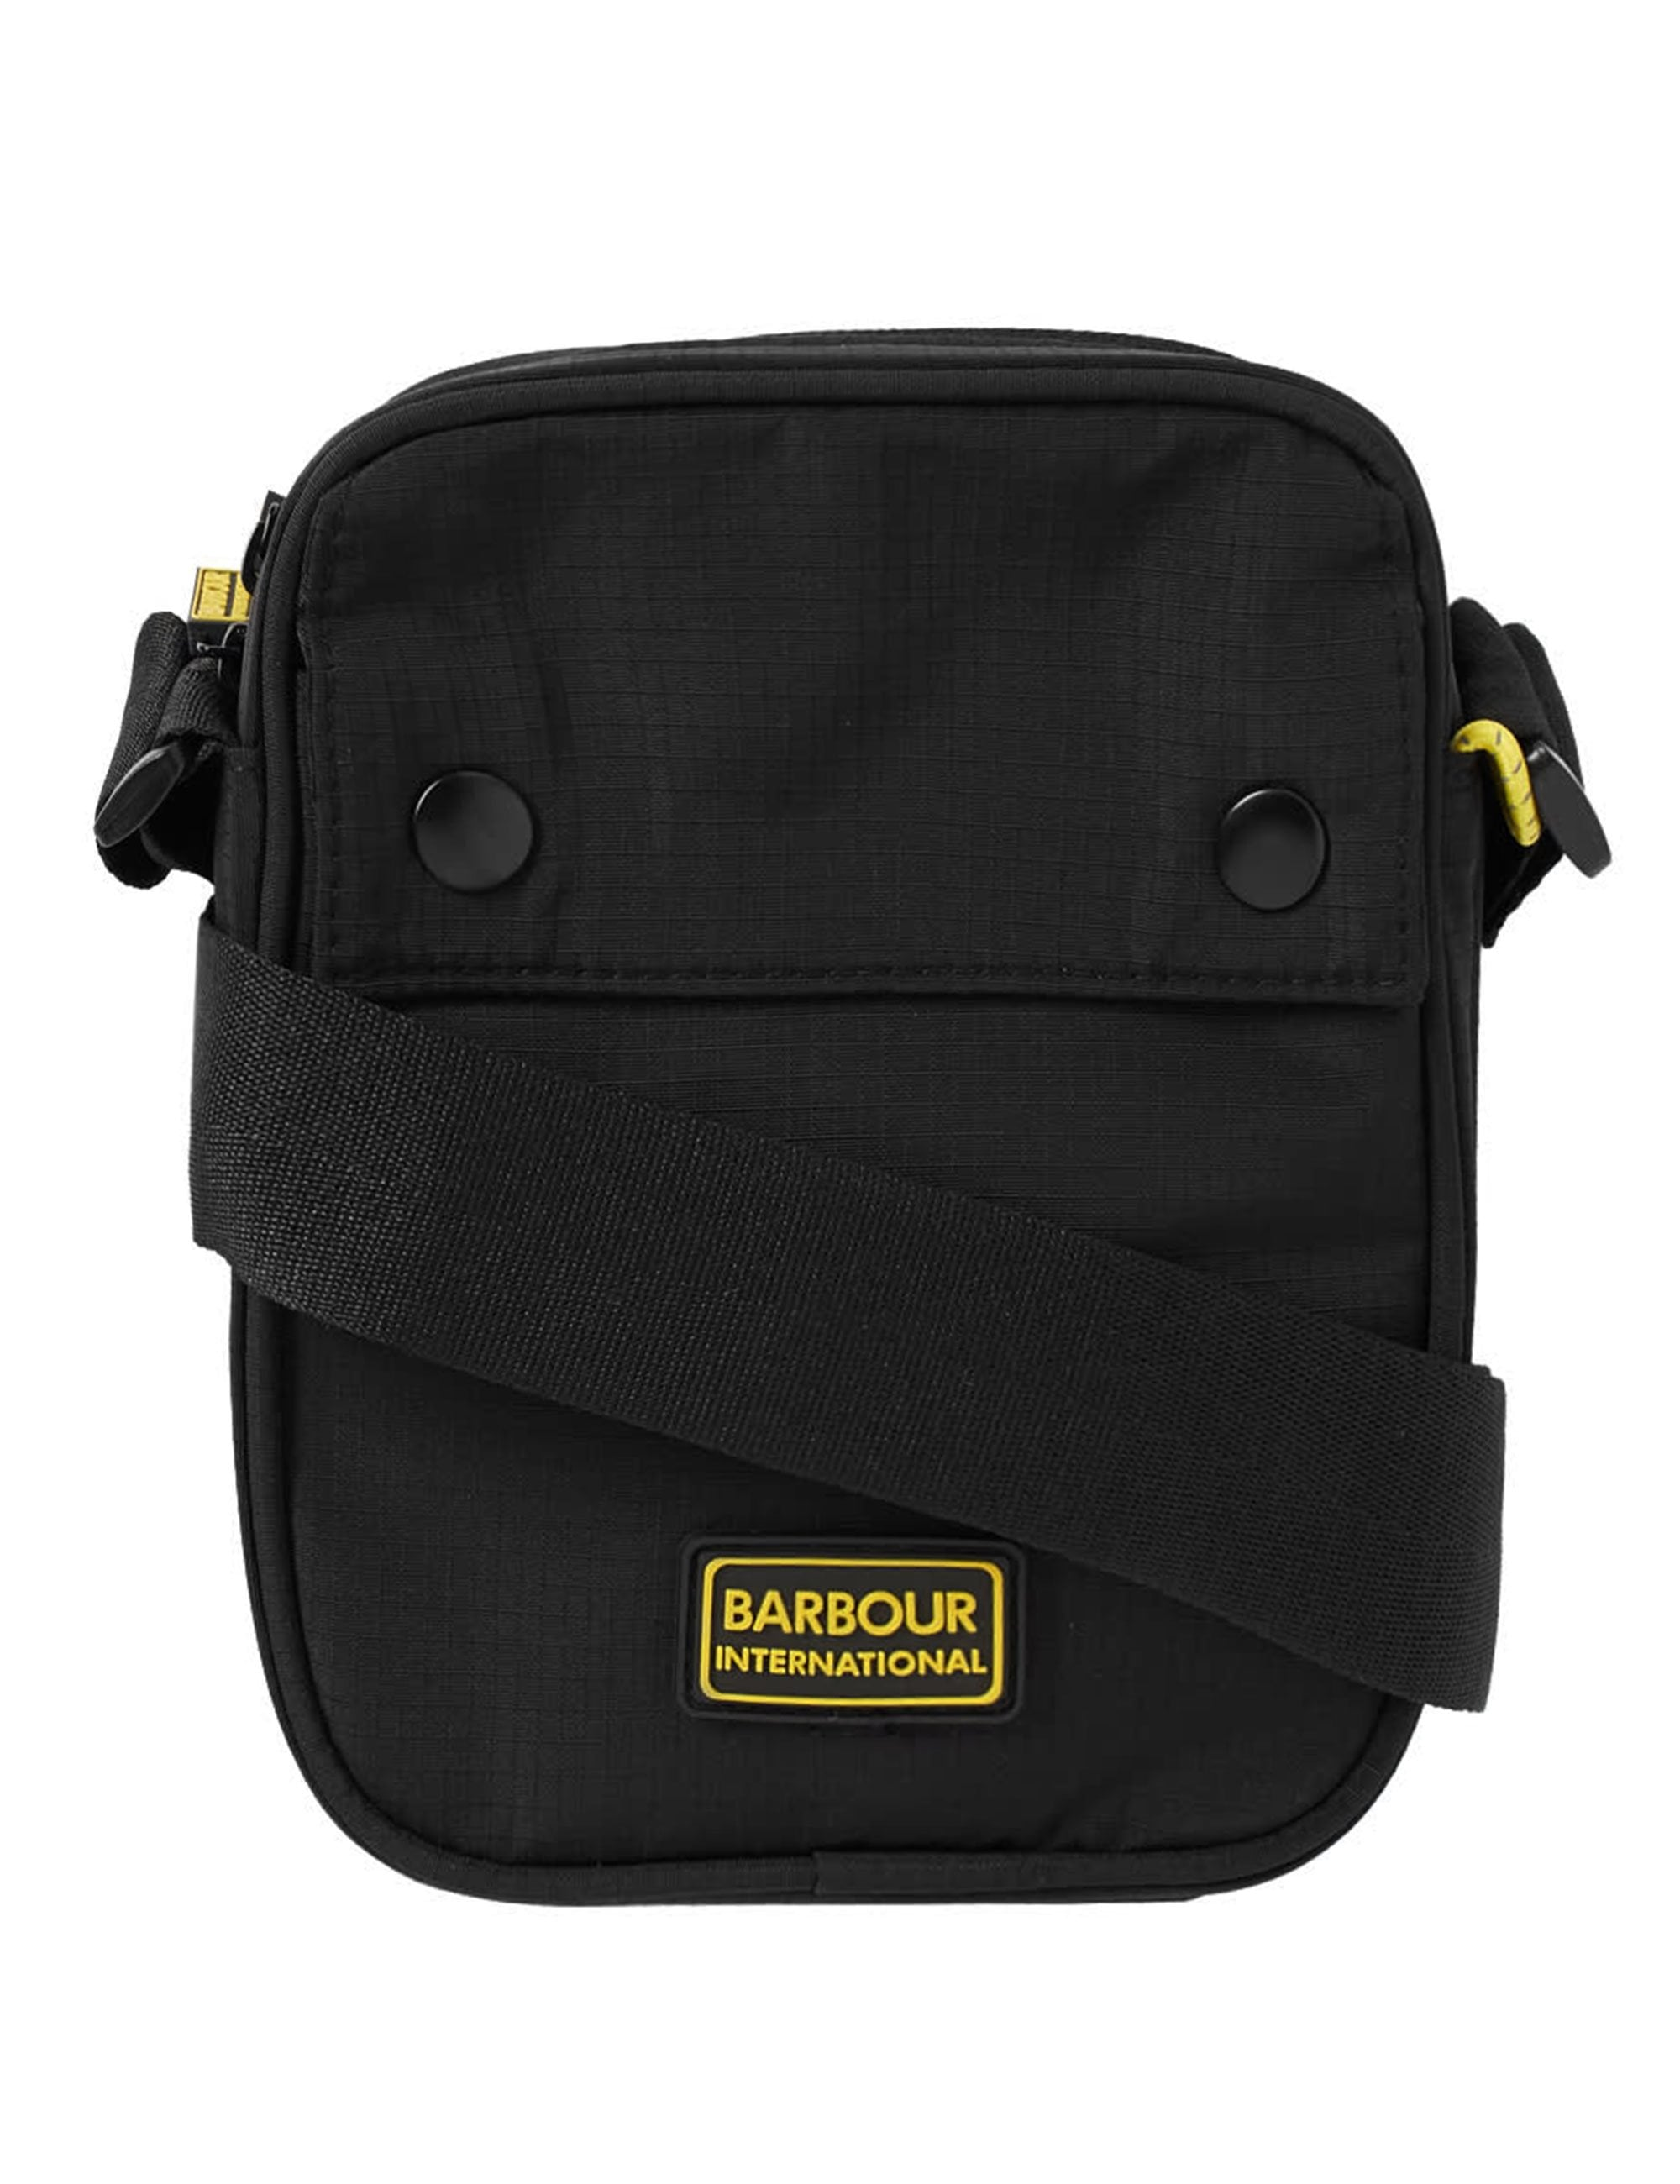 barbour bag